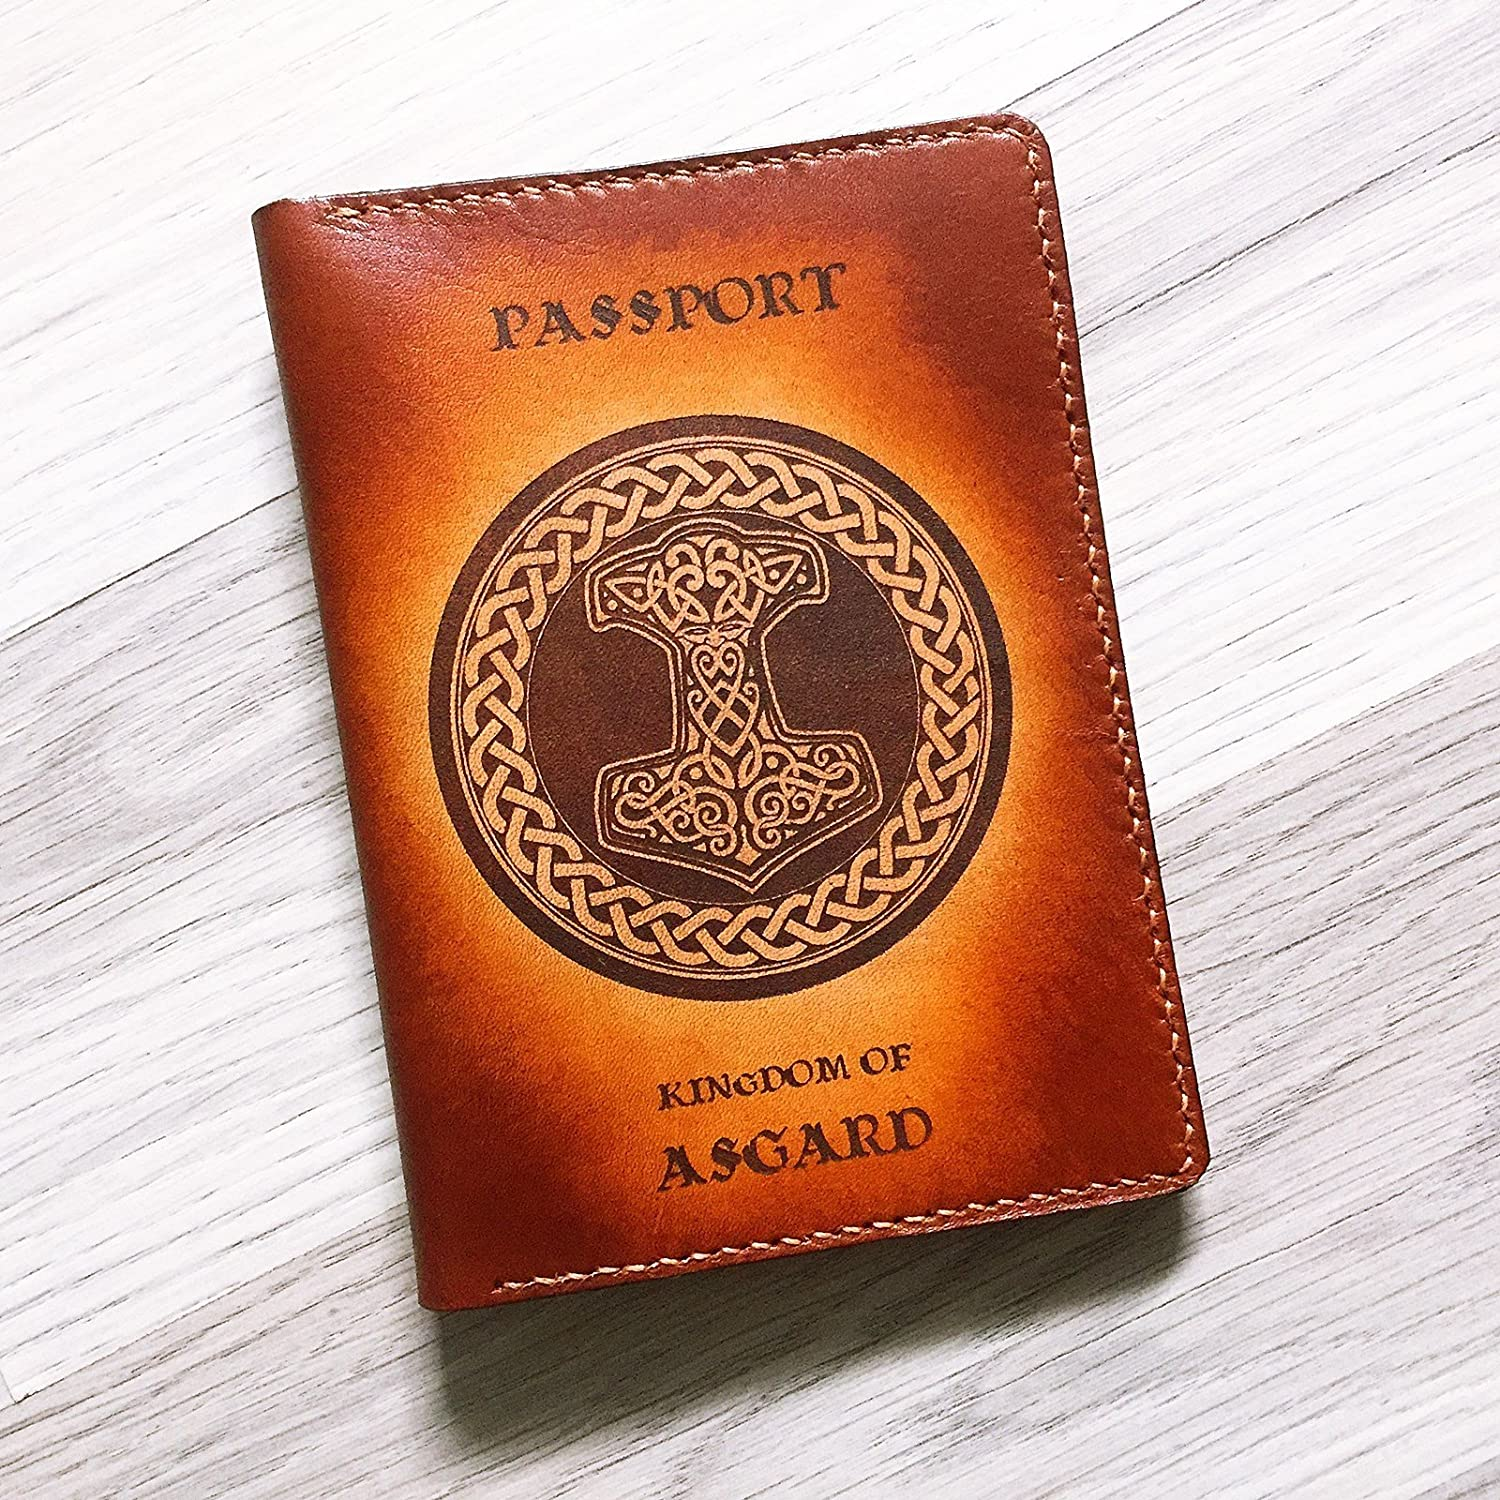 Unik4art - Asgardian Asgard leather handmade passport holder cover wallet Personalized Travel gifts